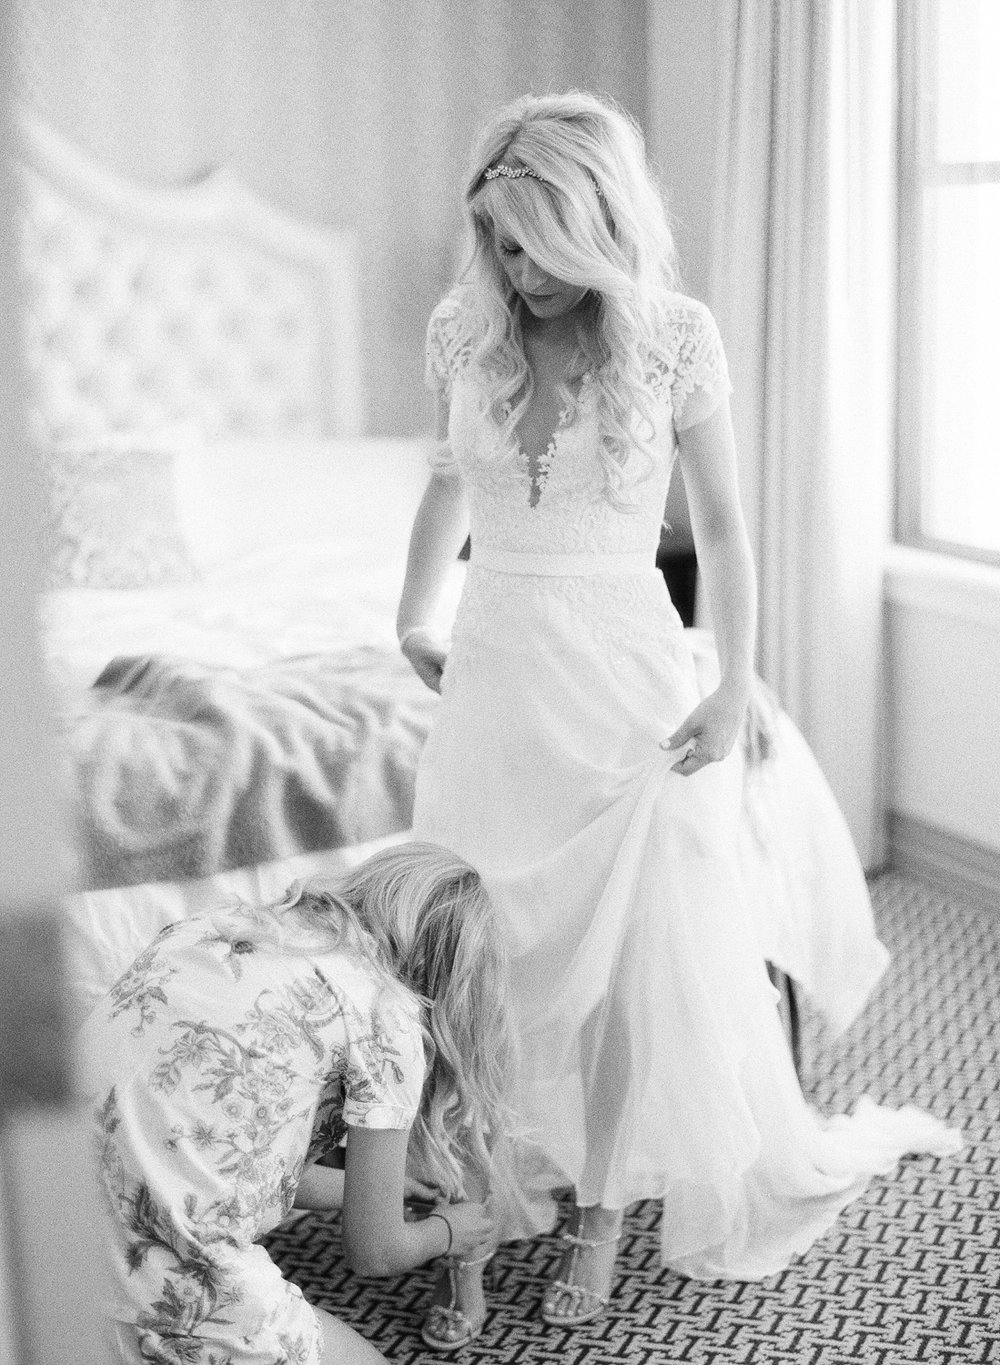 PROSPECT_HOUSE_WEDDING_AUSTIN_TX_BY_MATTHEW_MOORE_PHOTOGRAPHY_00039.jpg